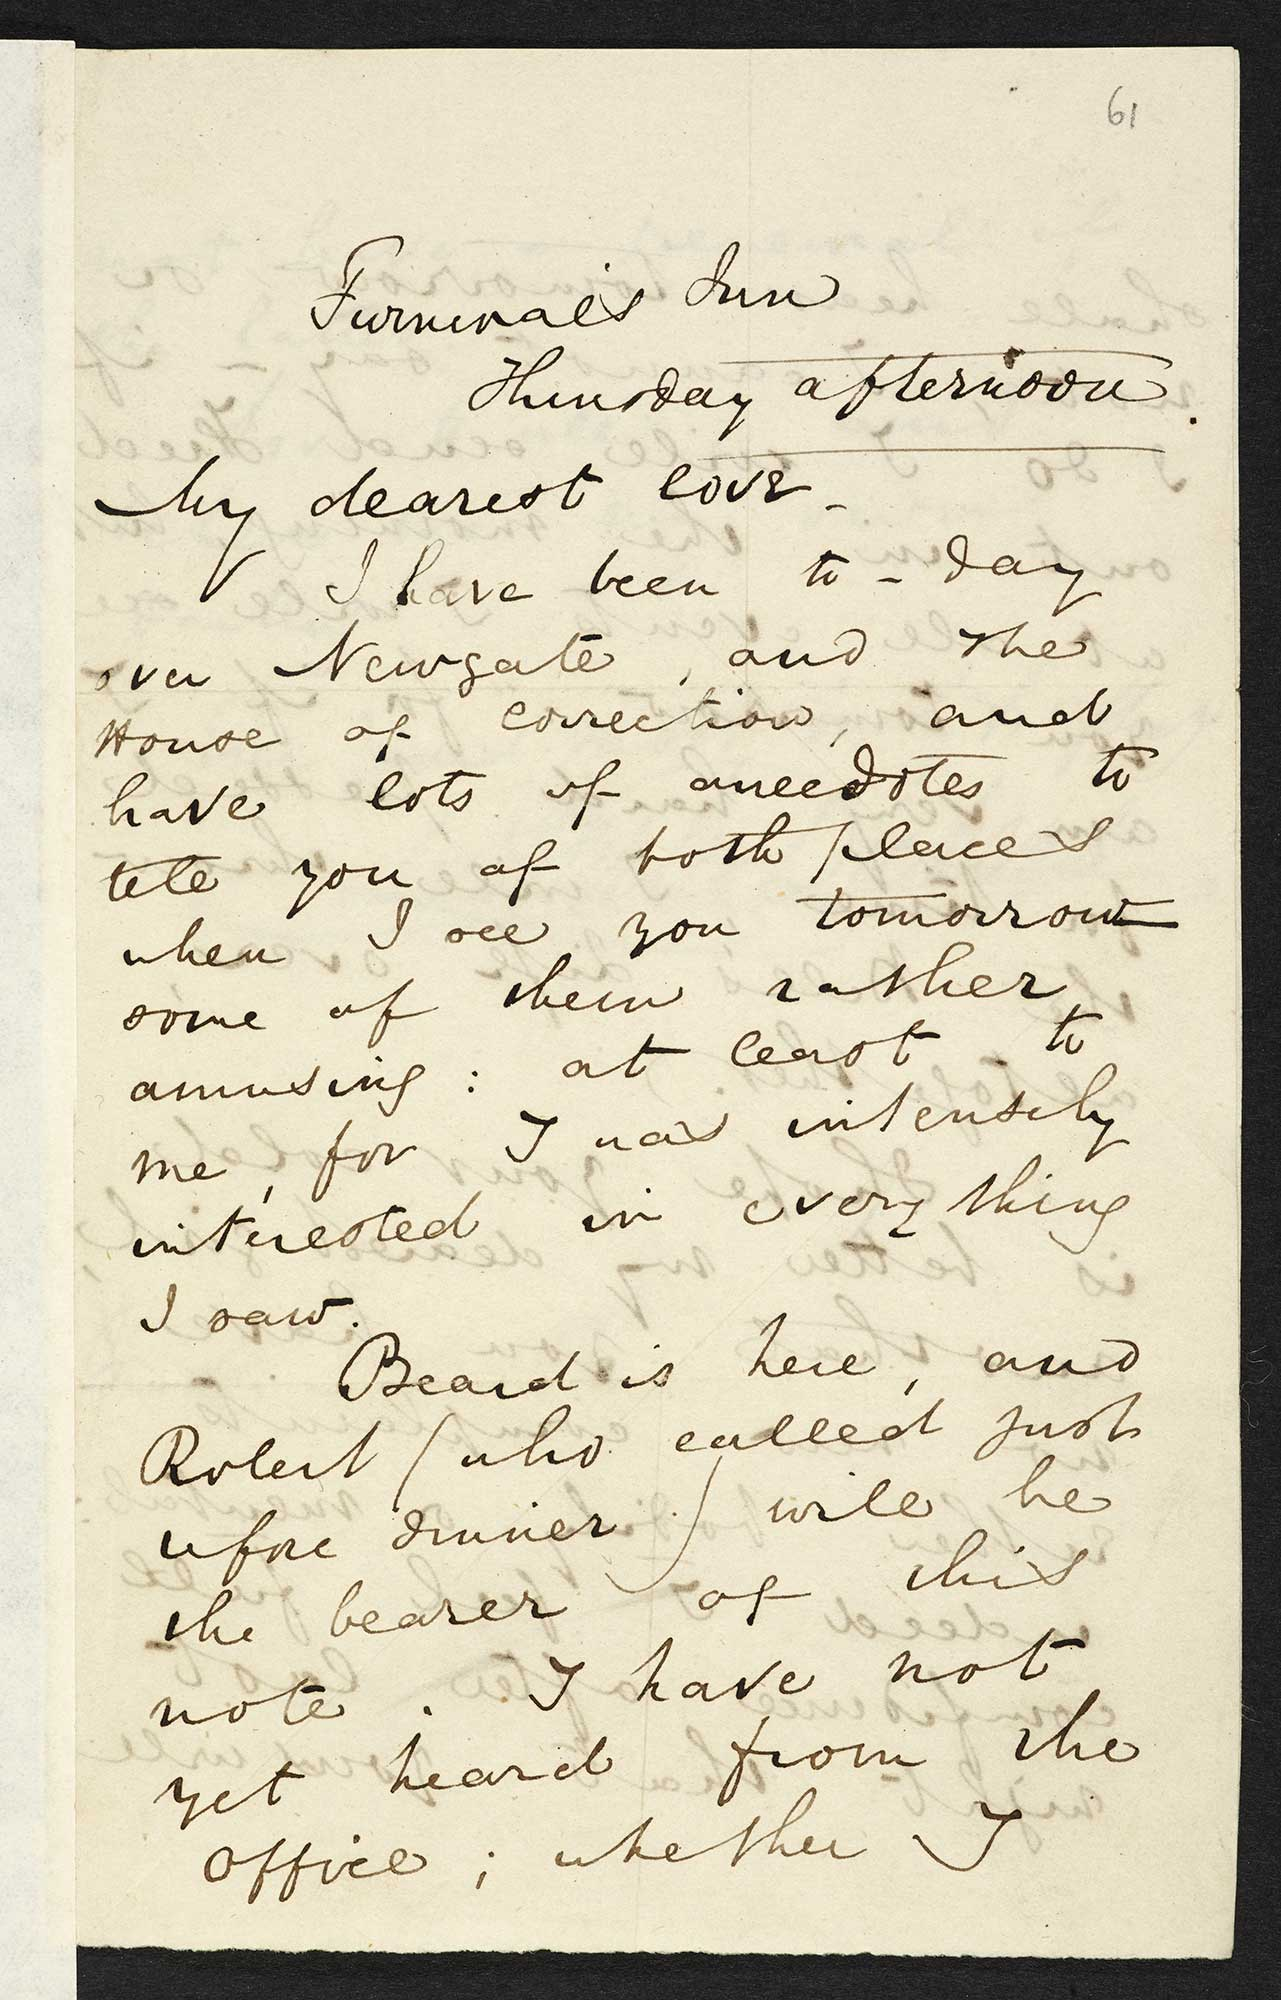 Letters about Newgate from Charles Dickens to his wife Catherine, [1835] [folio: 61r]